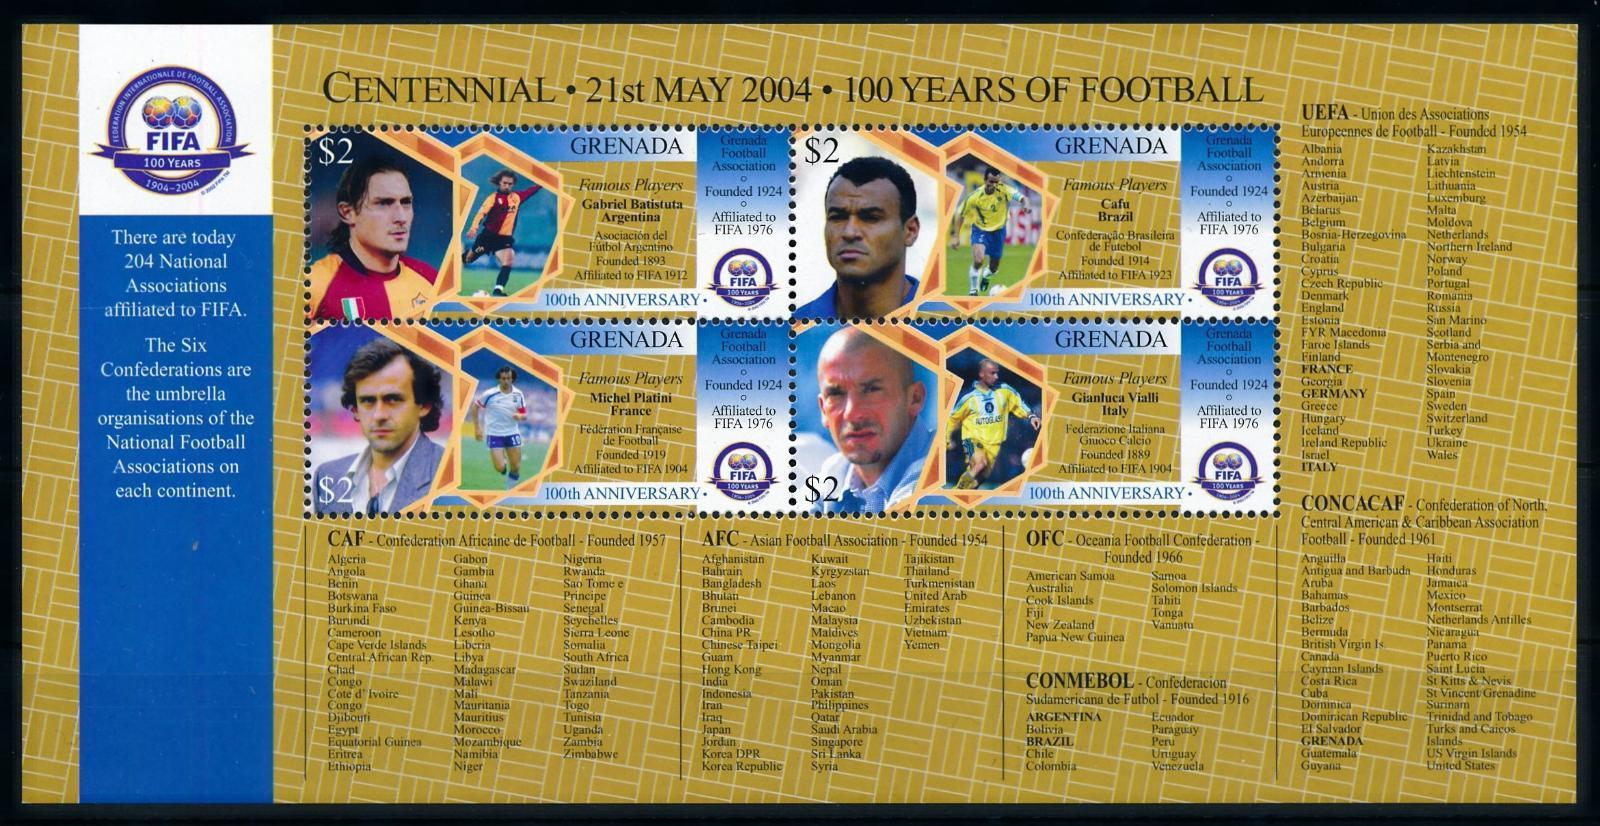 76916] Grenada 2004 Football Soccer Famous Players Batistuta